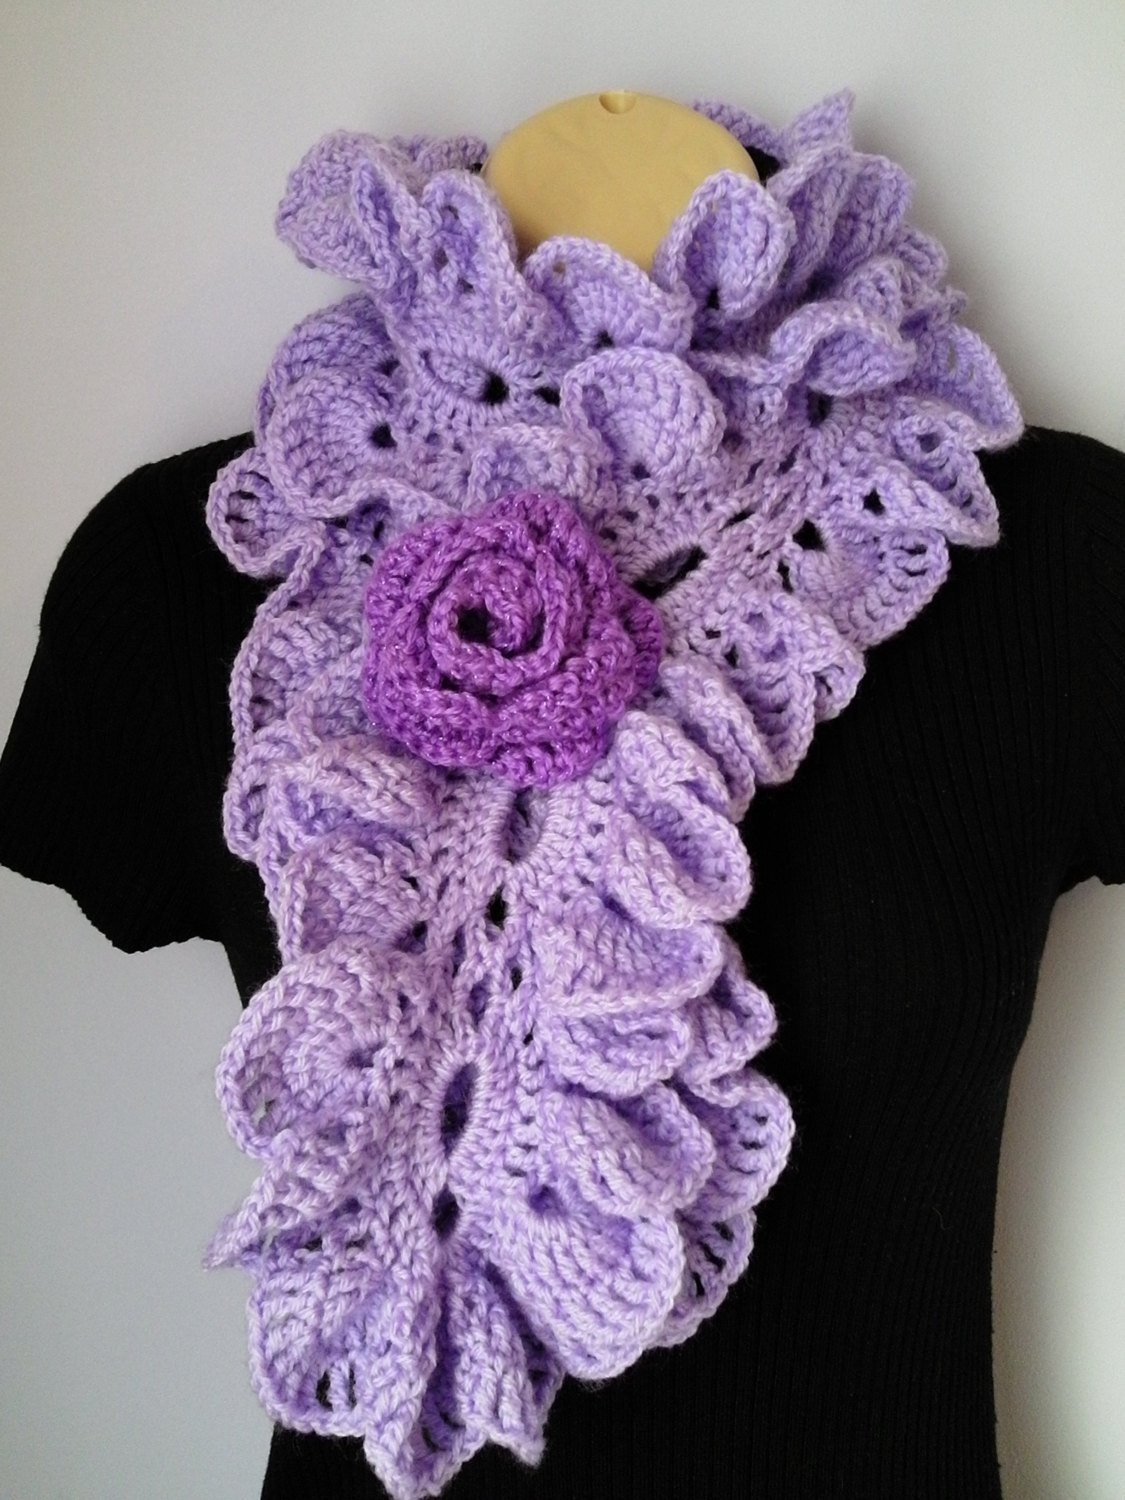 Best Of Crochet Scarf Neckwarmer Flower Brooch Ruffle Accessories Crochet Ruffle Scarf Of Inspirational Firehawke Hooks and Needles Free Pattern Ruffle Scarf Crochet Ruffle Scarf